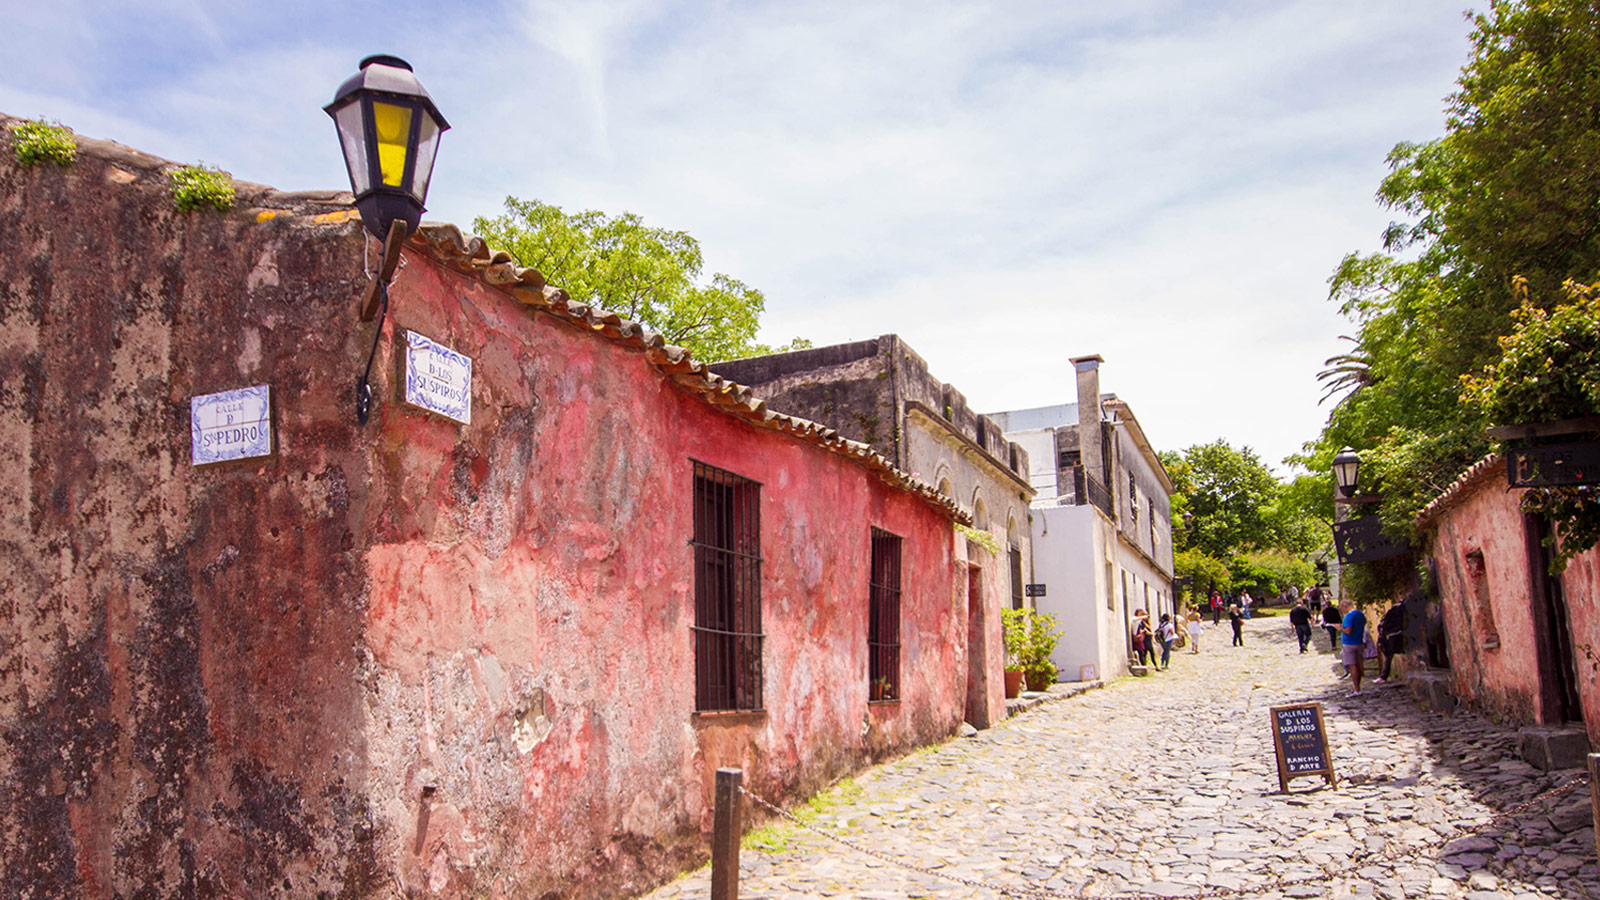 Calle de los Suspiros is a great place to visit in Colonia del Sacramento with kids.